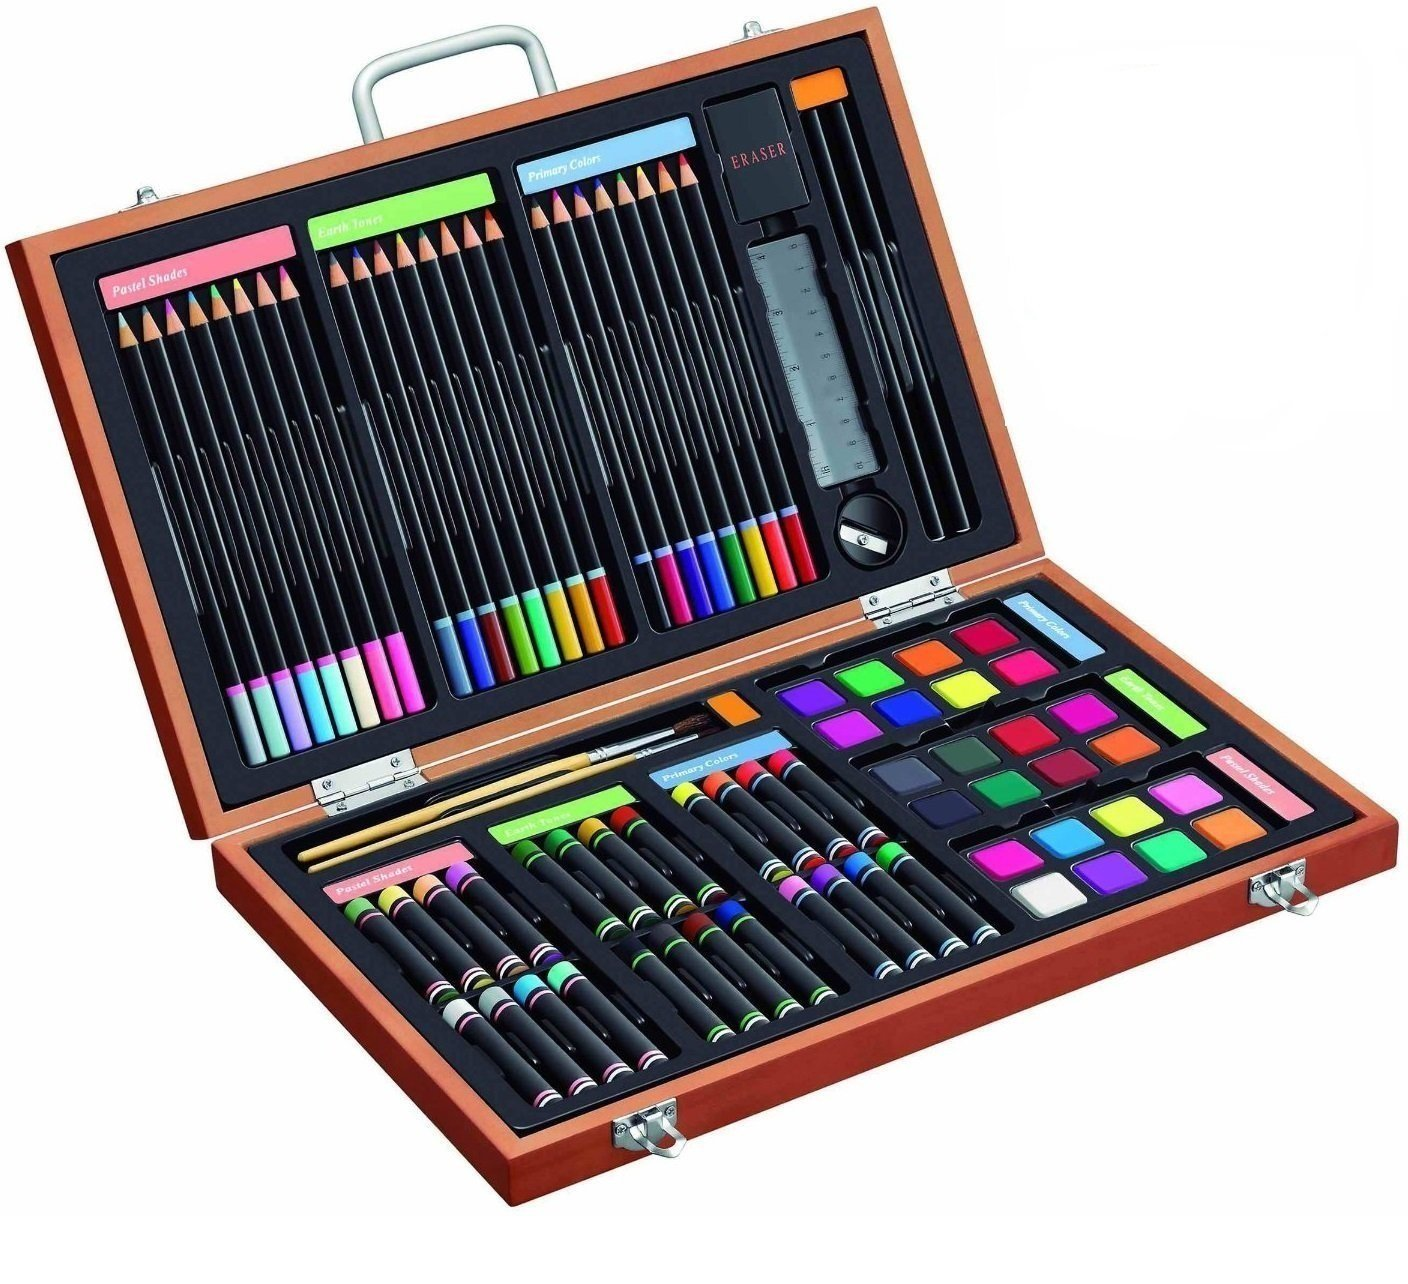 Gallery Studio - 82 Piece Deluxe Art Supplies Set in Wooden Case - Quality Mediums Guaranteed EK Success Lte. 6.09E+11